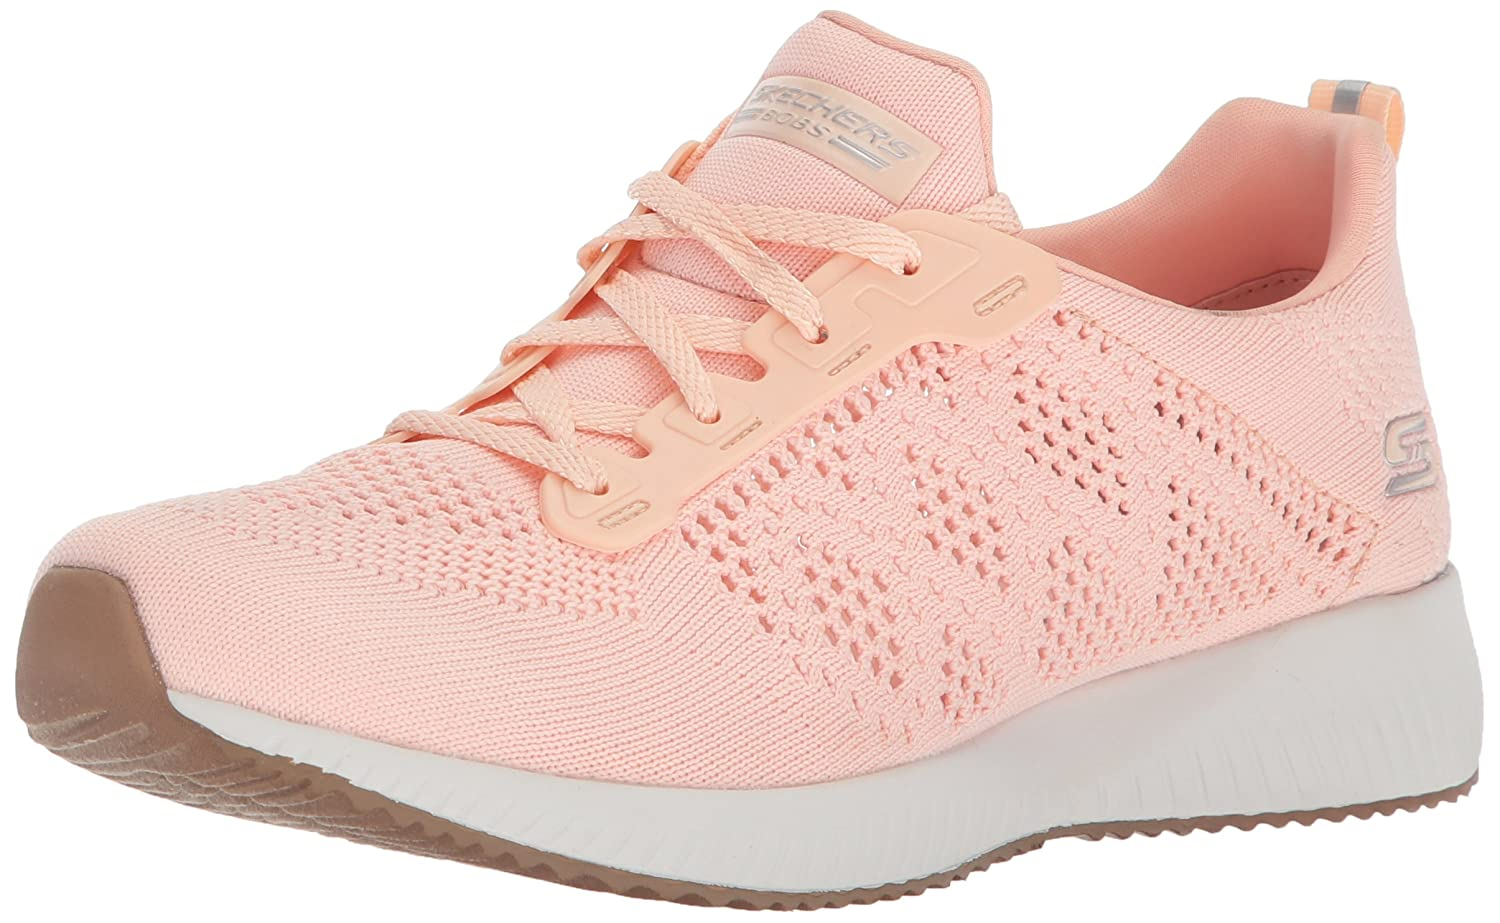 Skechers BOBS from Women's Bobs Squad-Open Weave Sneaker B071G3VX6H 9 M US|Light Pink